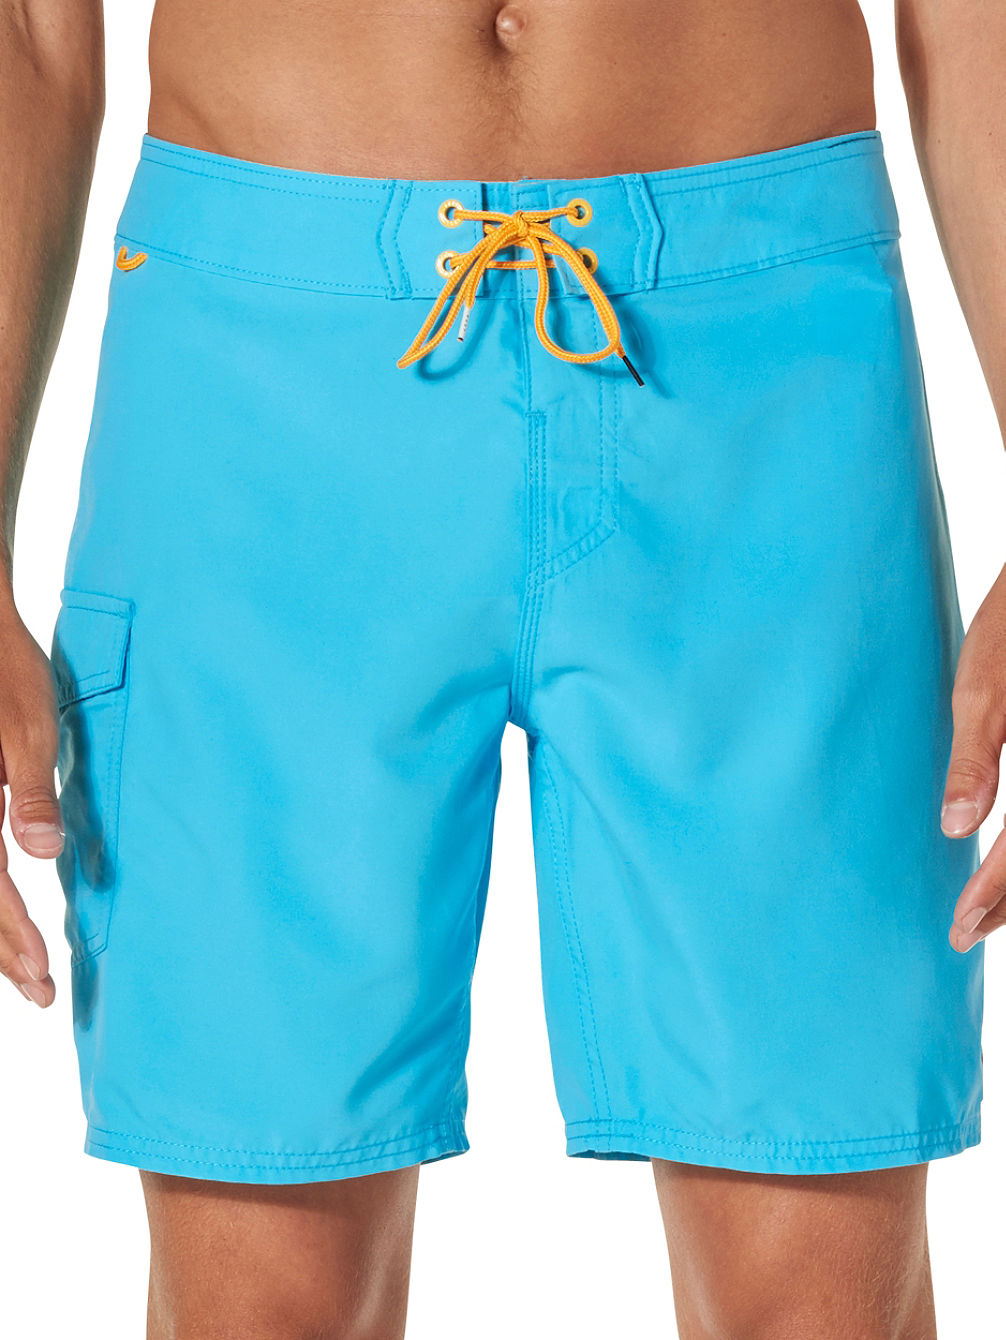 Lucas 2 Shortie Boardshorts